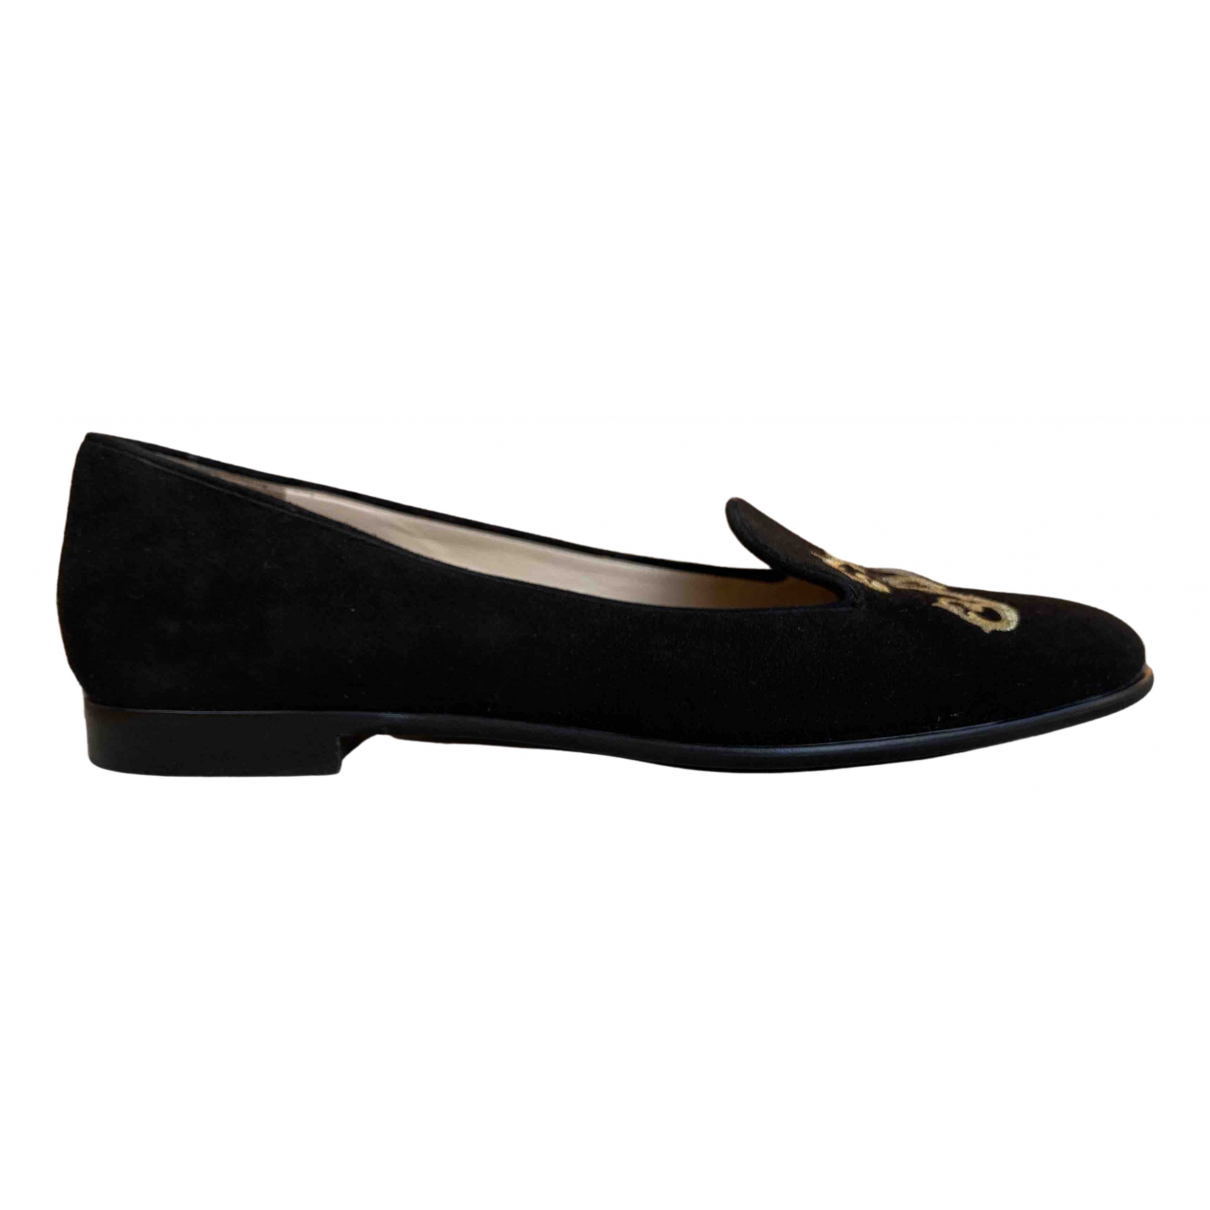 Moschino \N Black Suede Flats for Women 39.5 IT